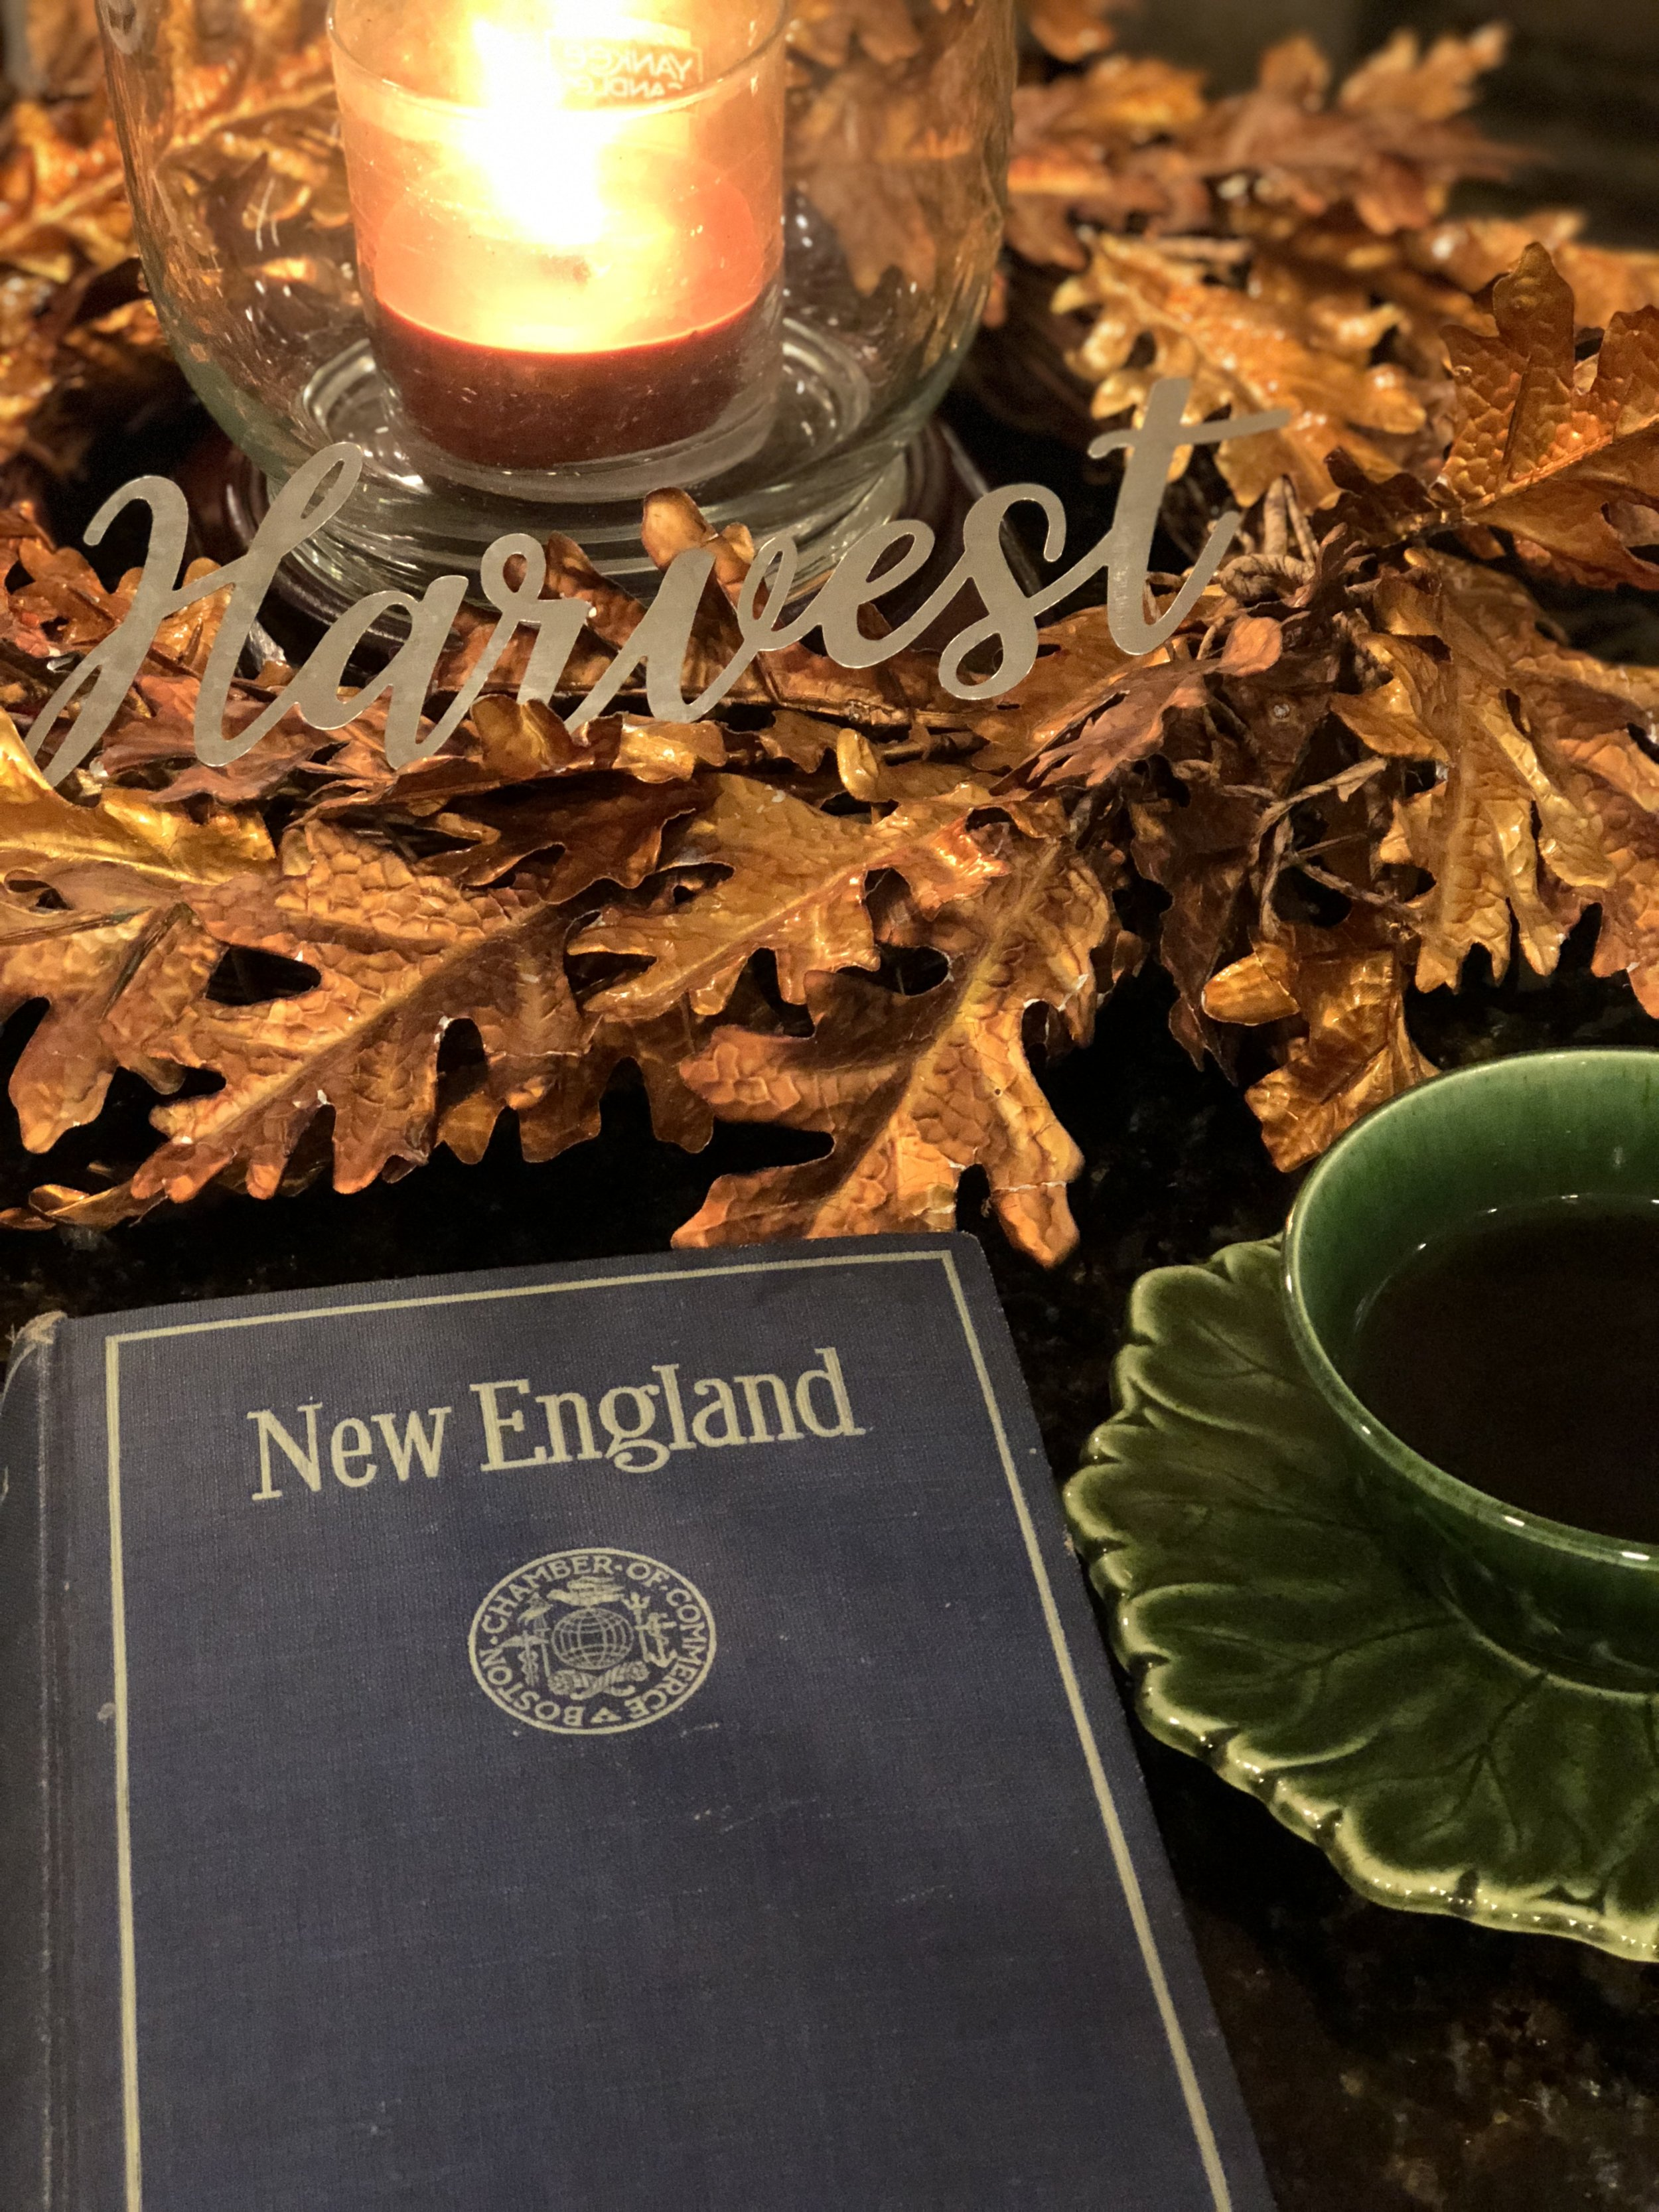 For the third year running, I am burning and enjoying  Yankee Candle's Autumn Wreath . For me, it is the perfect blend of scents that subtly shouts Fall in New England.